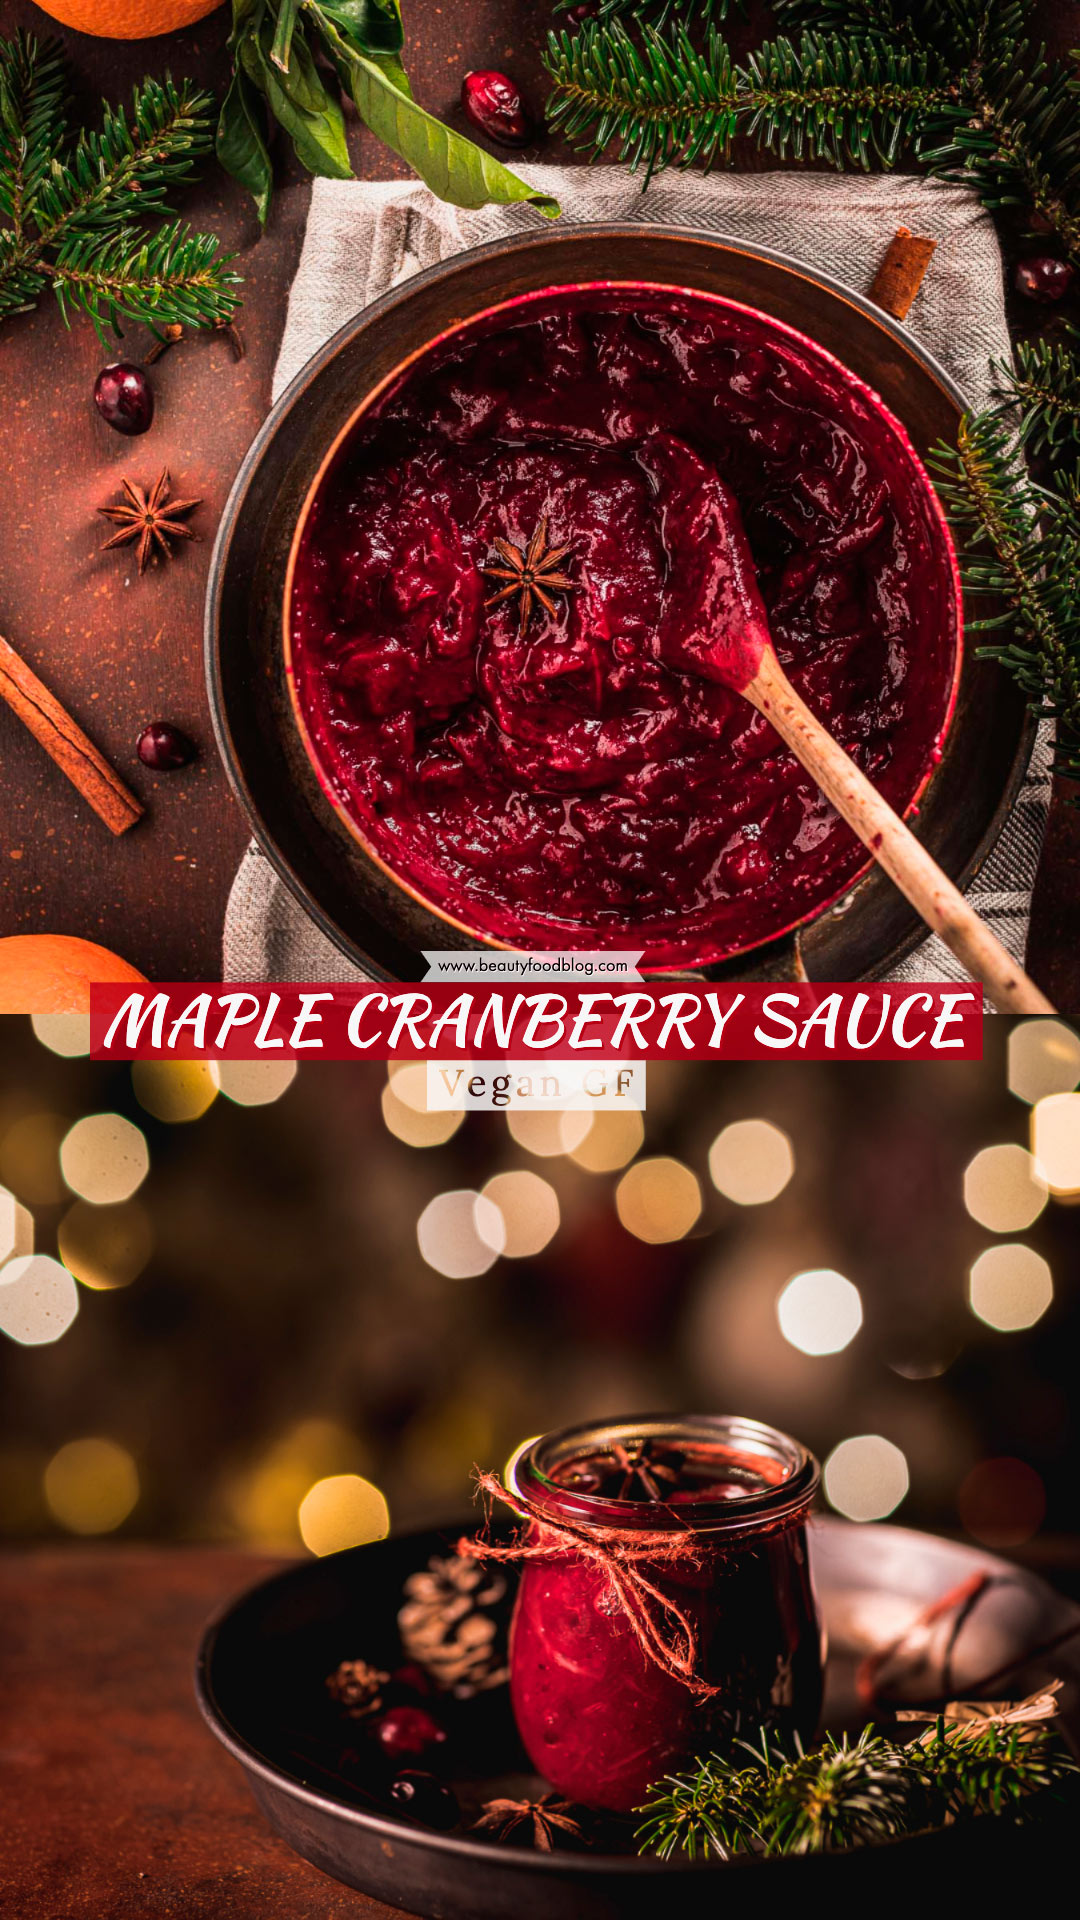 Maple Cranberry Sauce recipe naturally sweetened with maple syrup healthy ricetta salsa di mirtilli rossi senza zucchero vegan Natale Thanksgiving